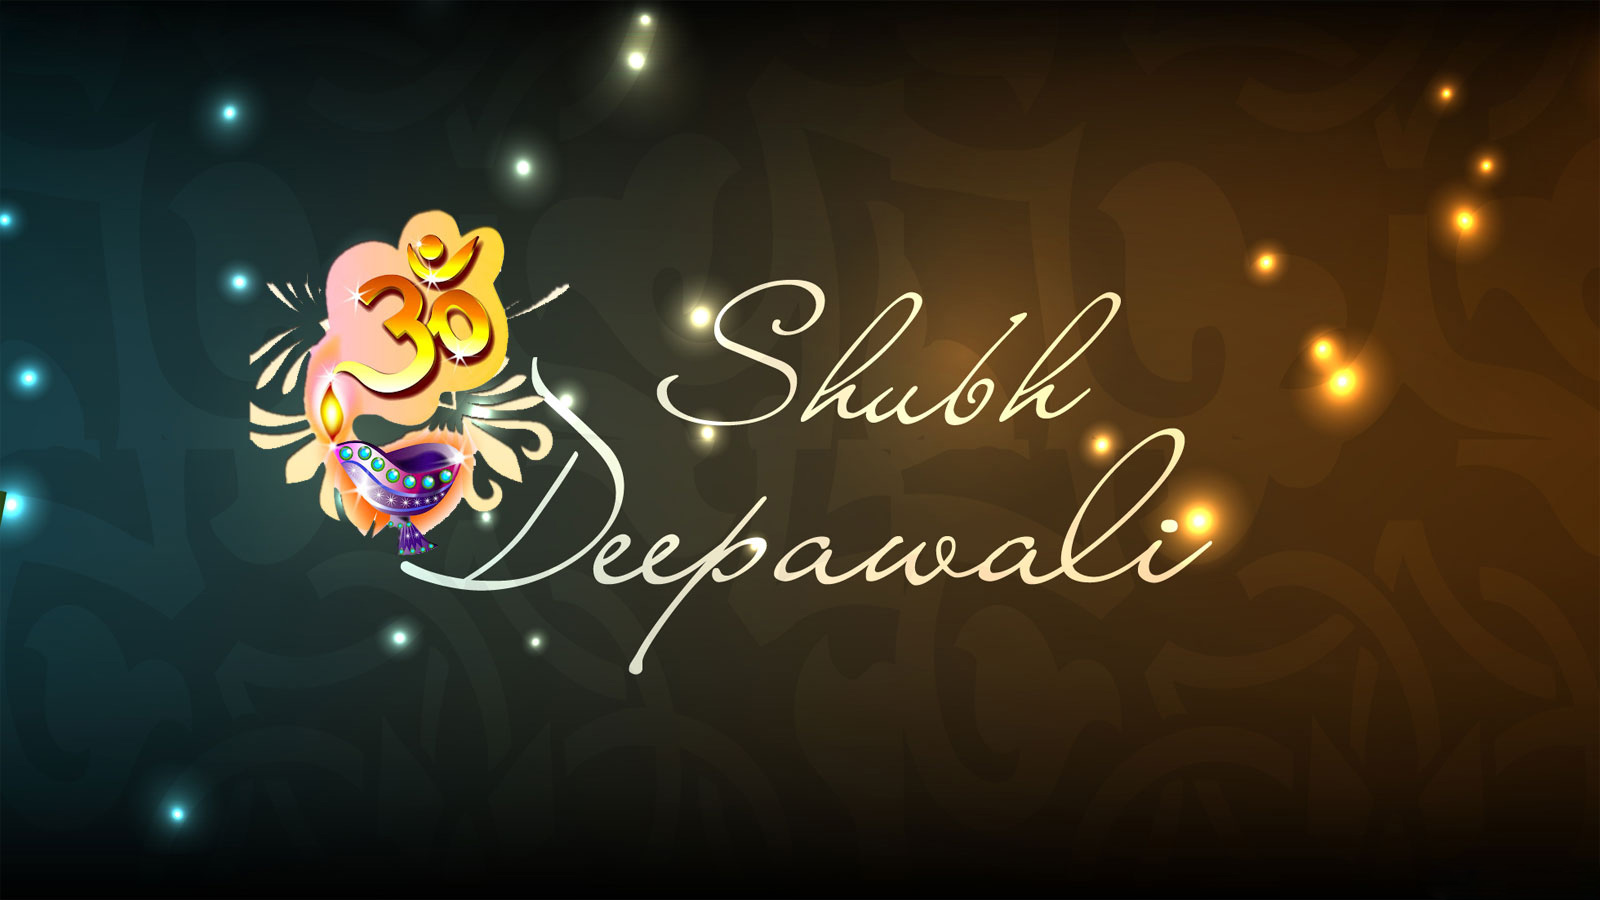 Diwali Images quotes